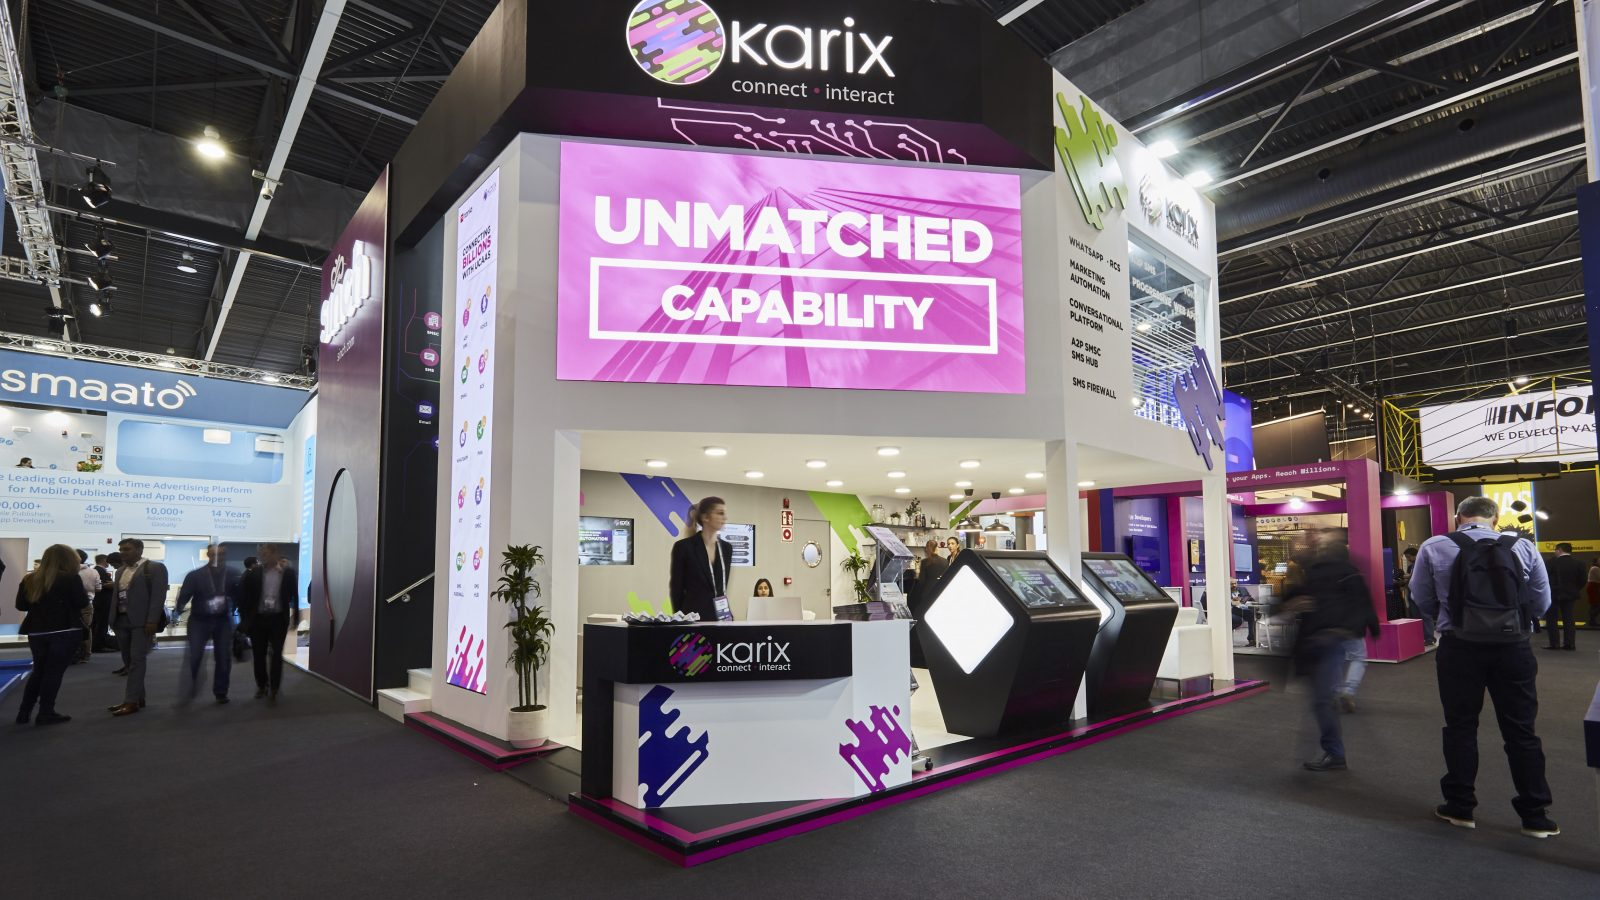 Karix booth at MWC 2019